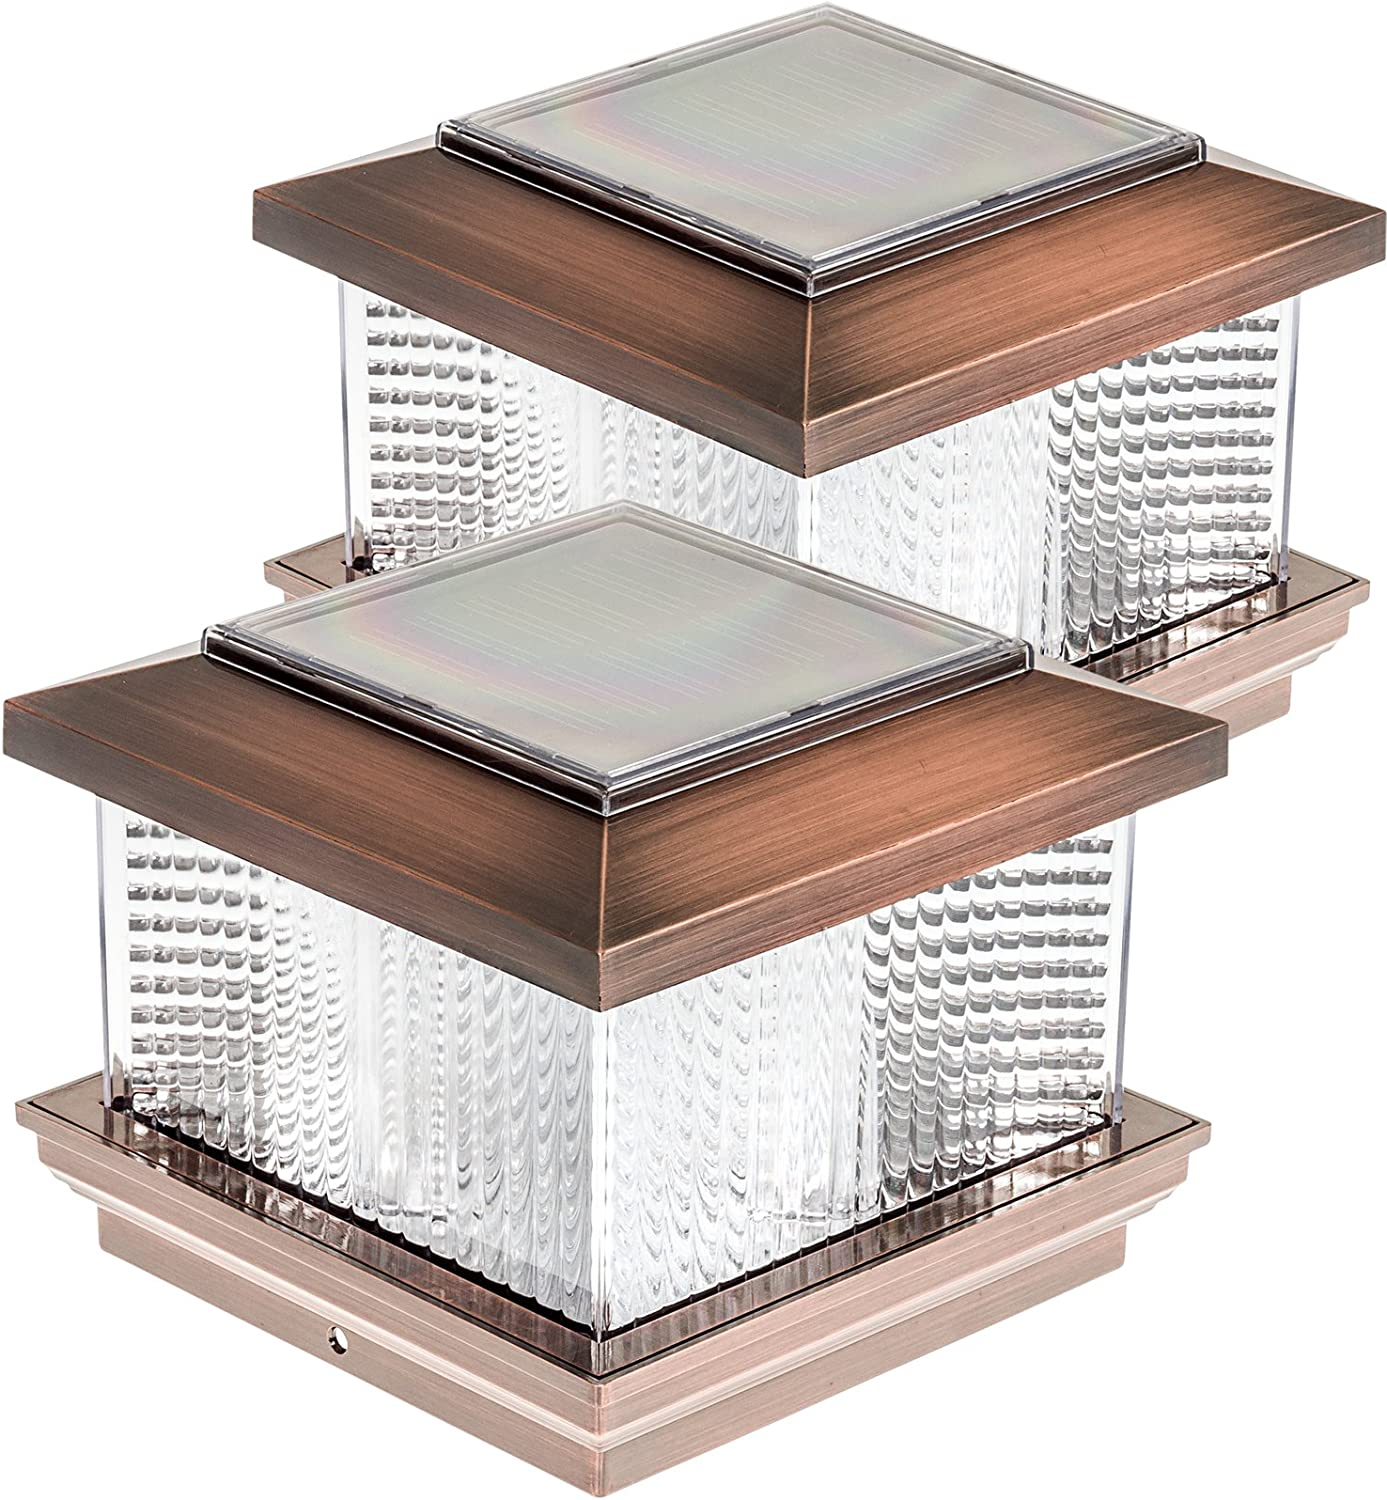 GreenLighting Solar LED Post Cap Light for 5 x 5 PVC Posts w//Wood Post Adapter Copper 2 Pack